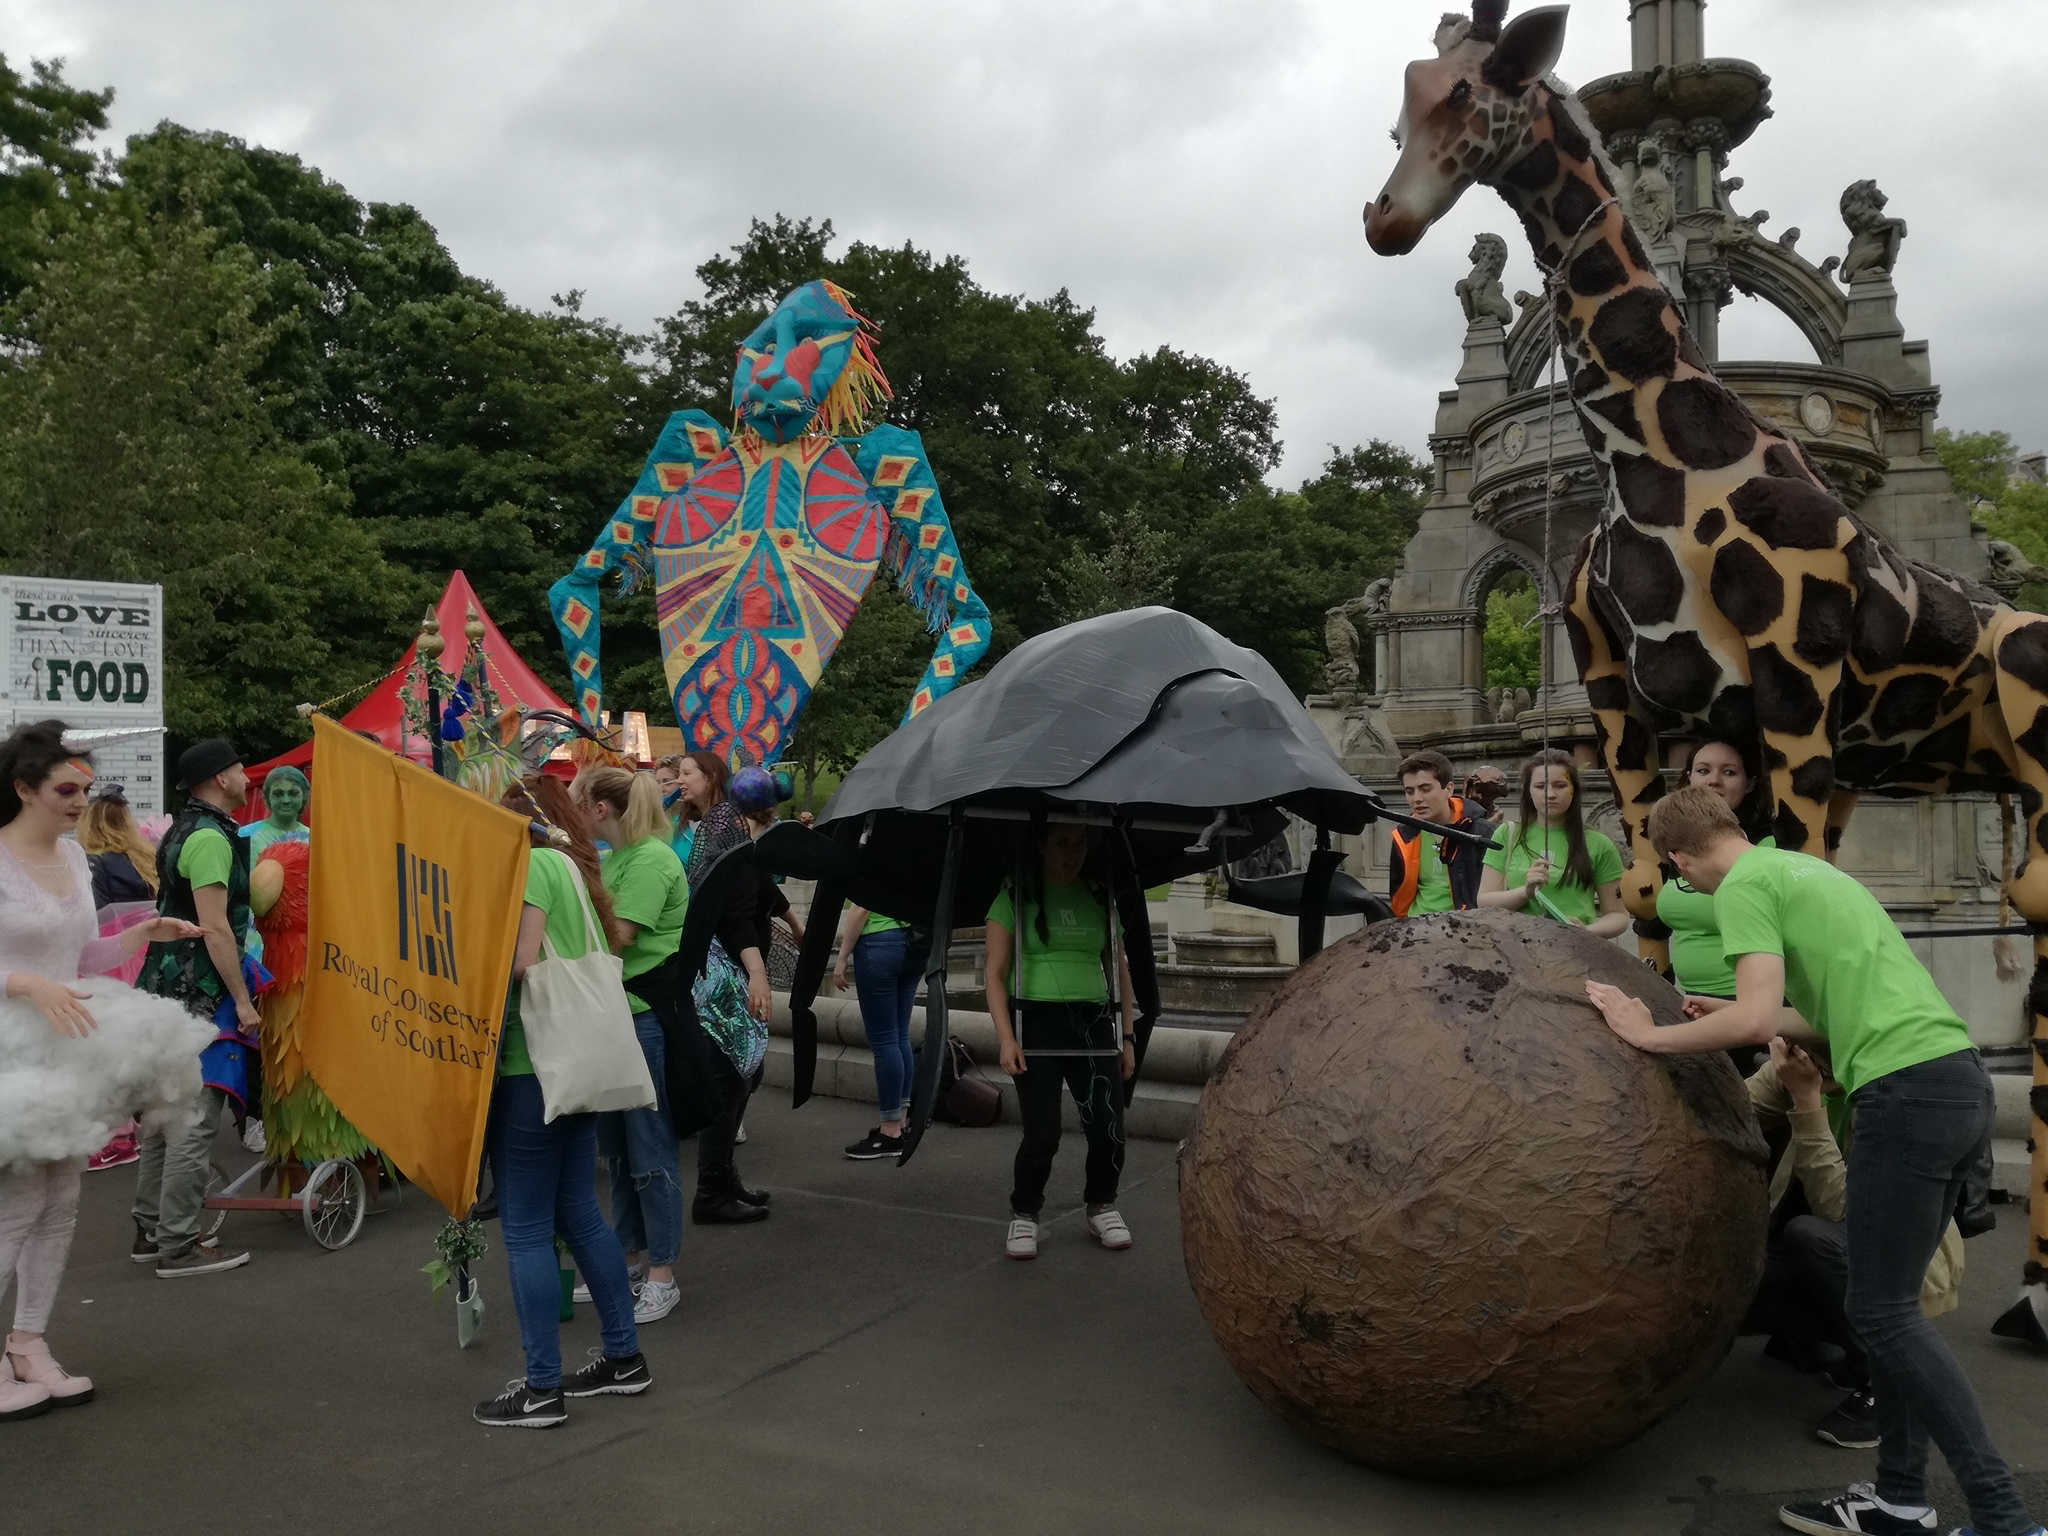 Production students showcasing their creations including a dung beetle and giraffe at the West End festival